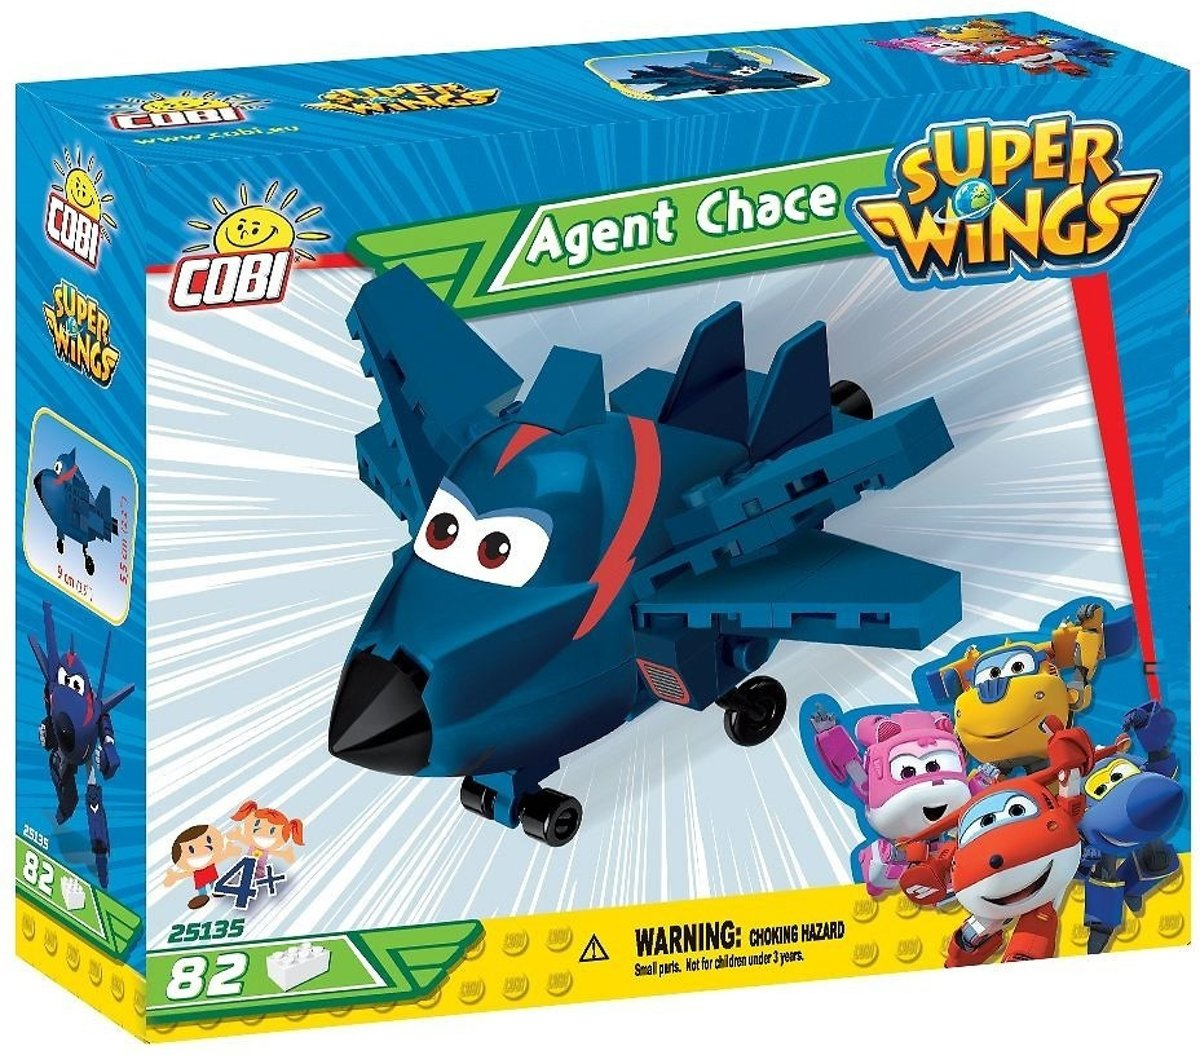 Cobi 80 Pcs Super Wings /25135/ Agent Chase